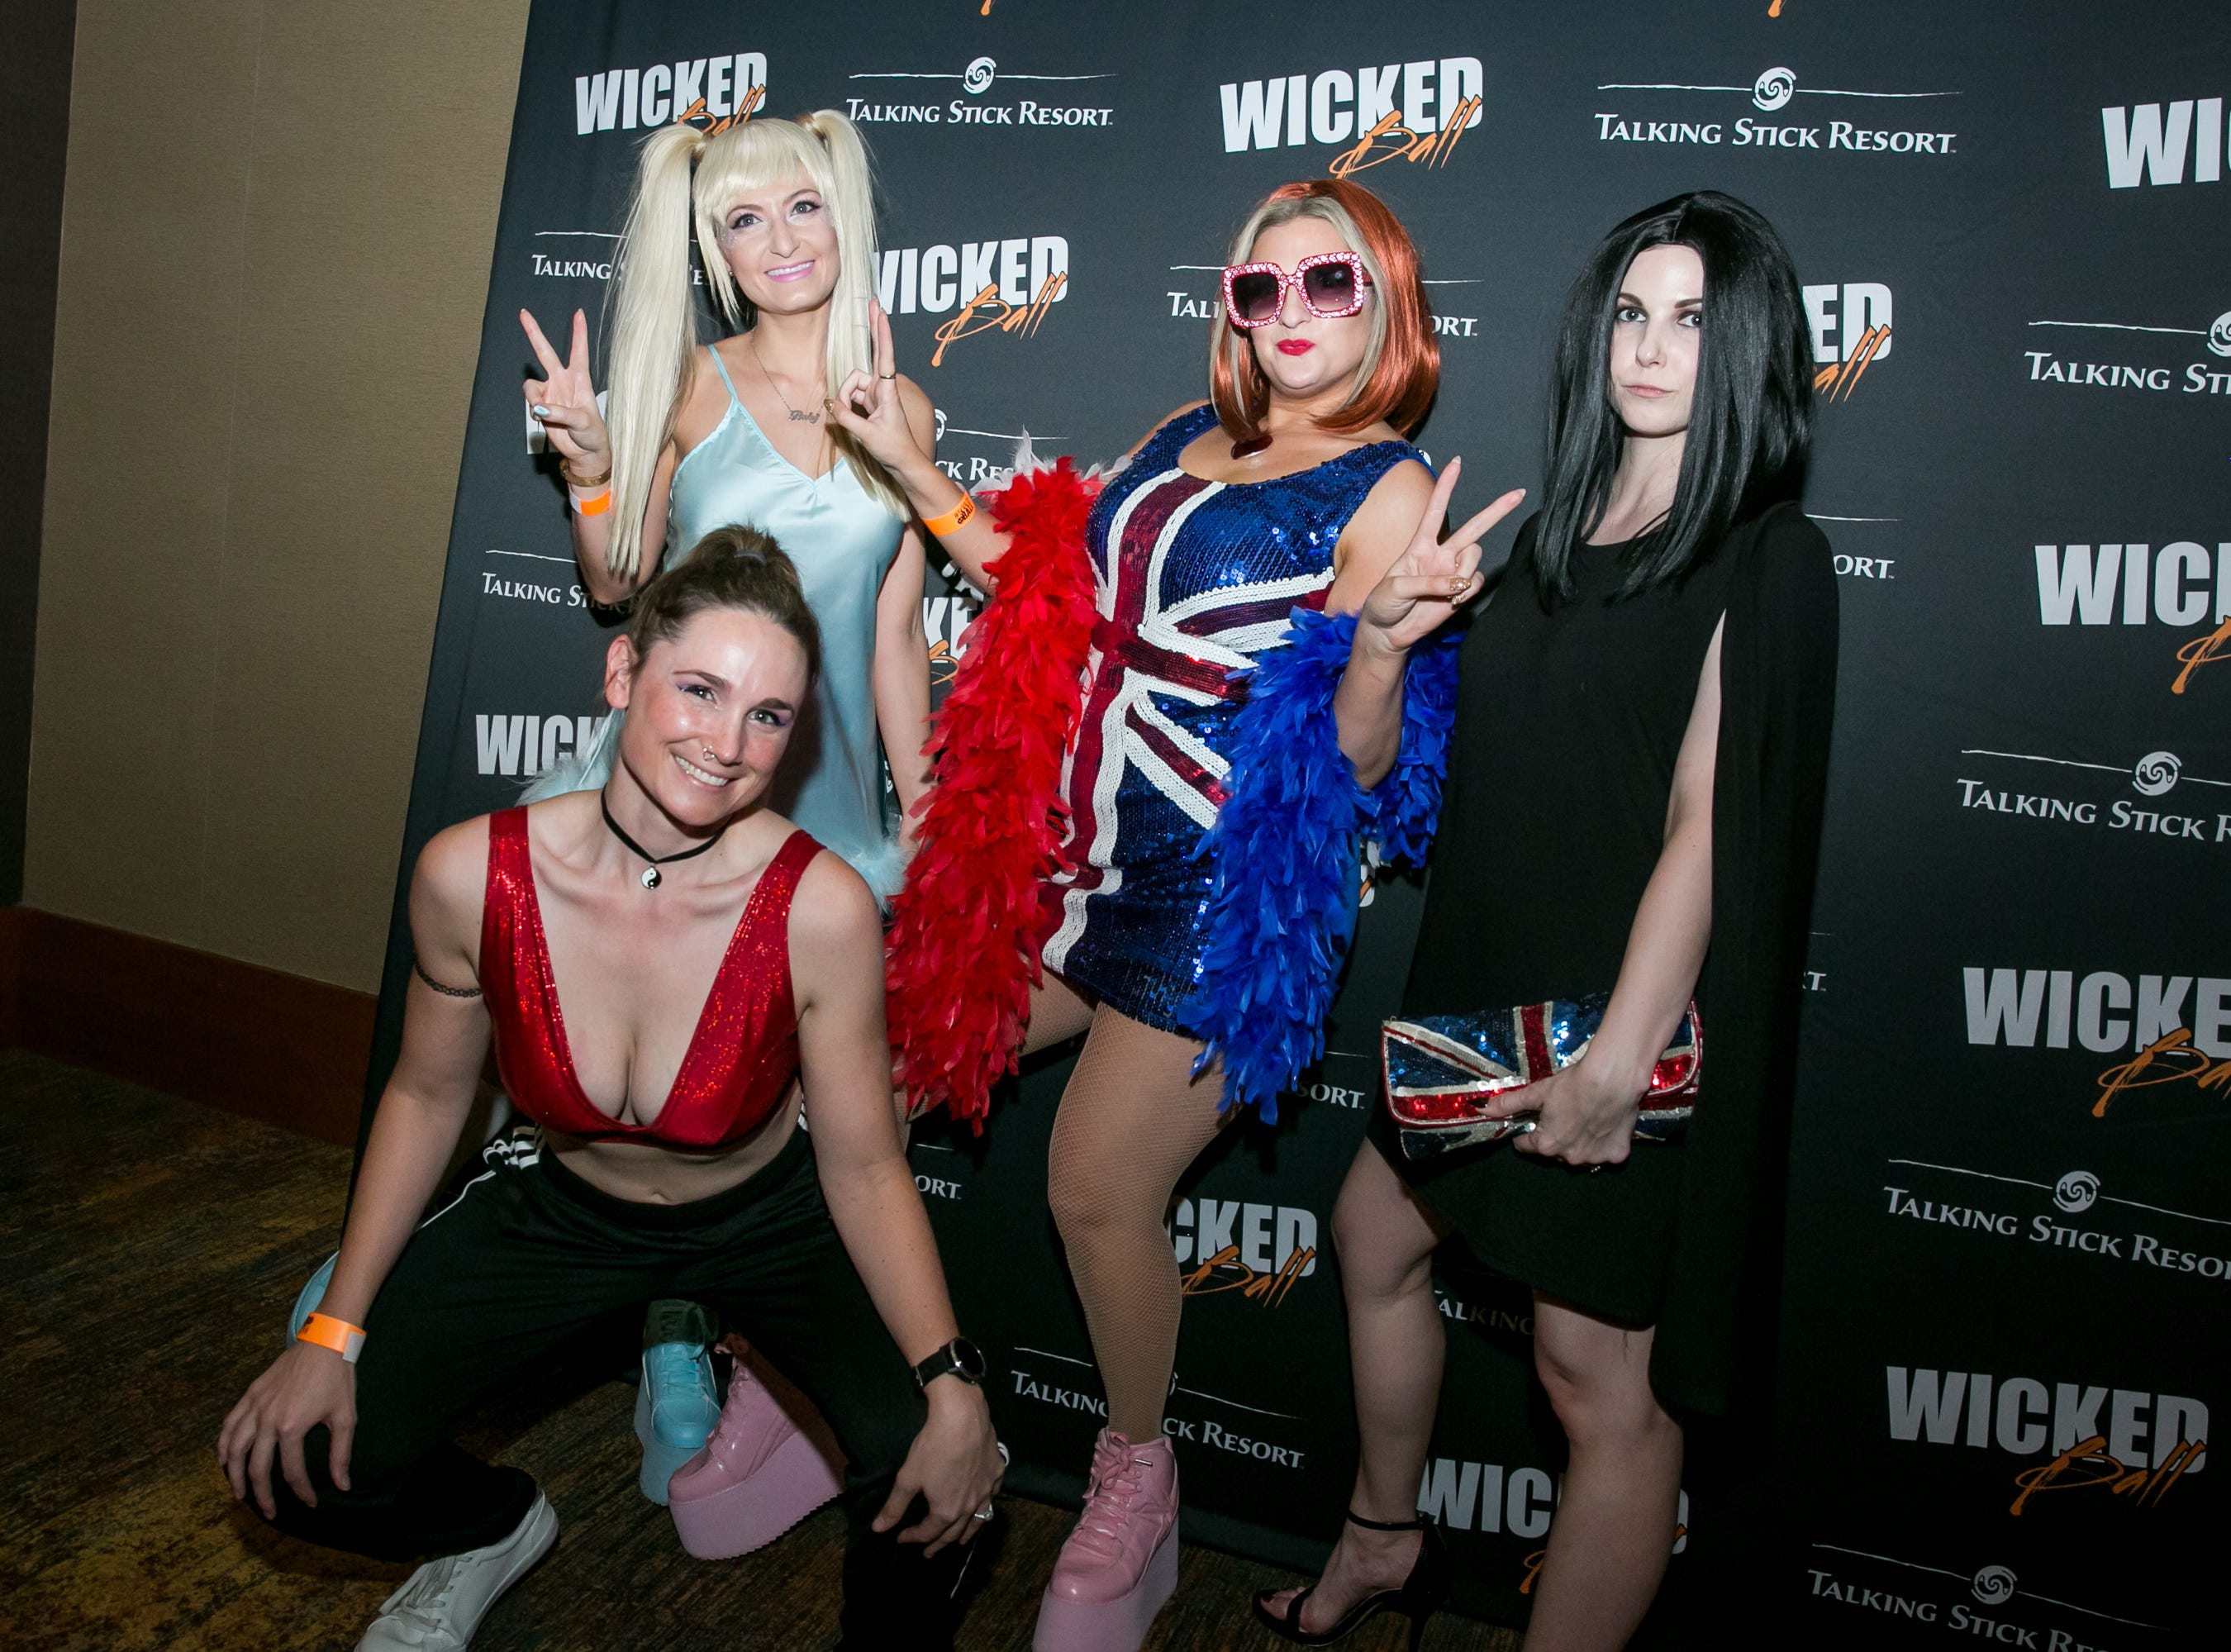 The Spice Girls made their big comeback during Wicked Ball at Talking Stick Resort on Saturday, October 27, 2018.